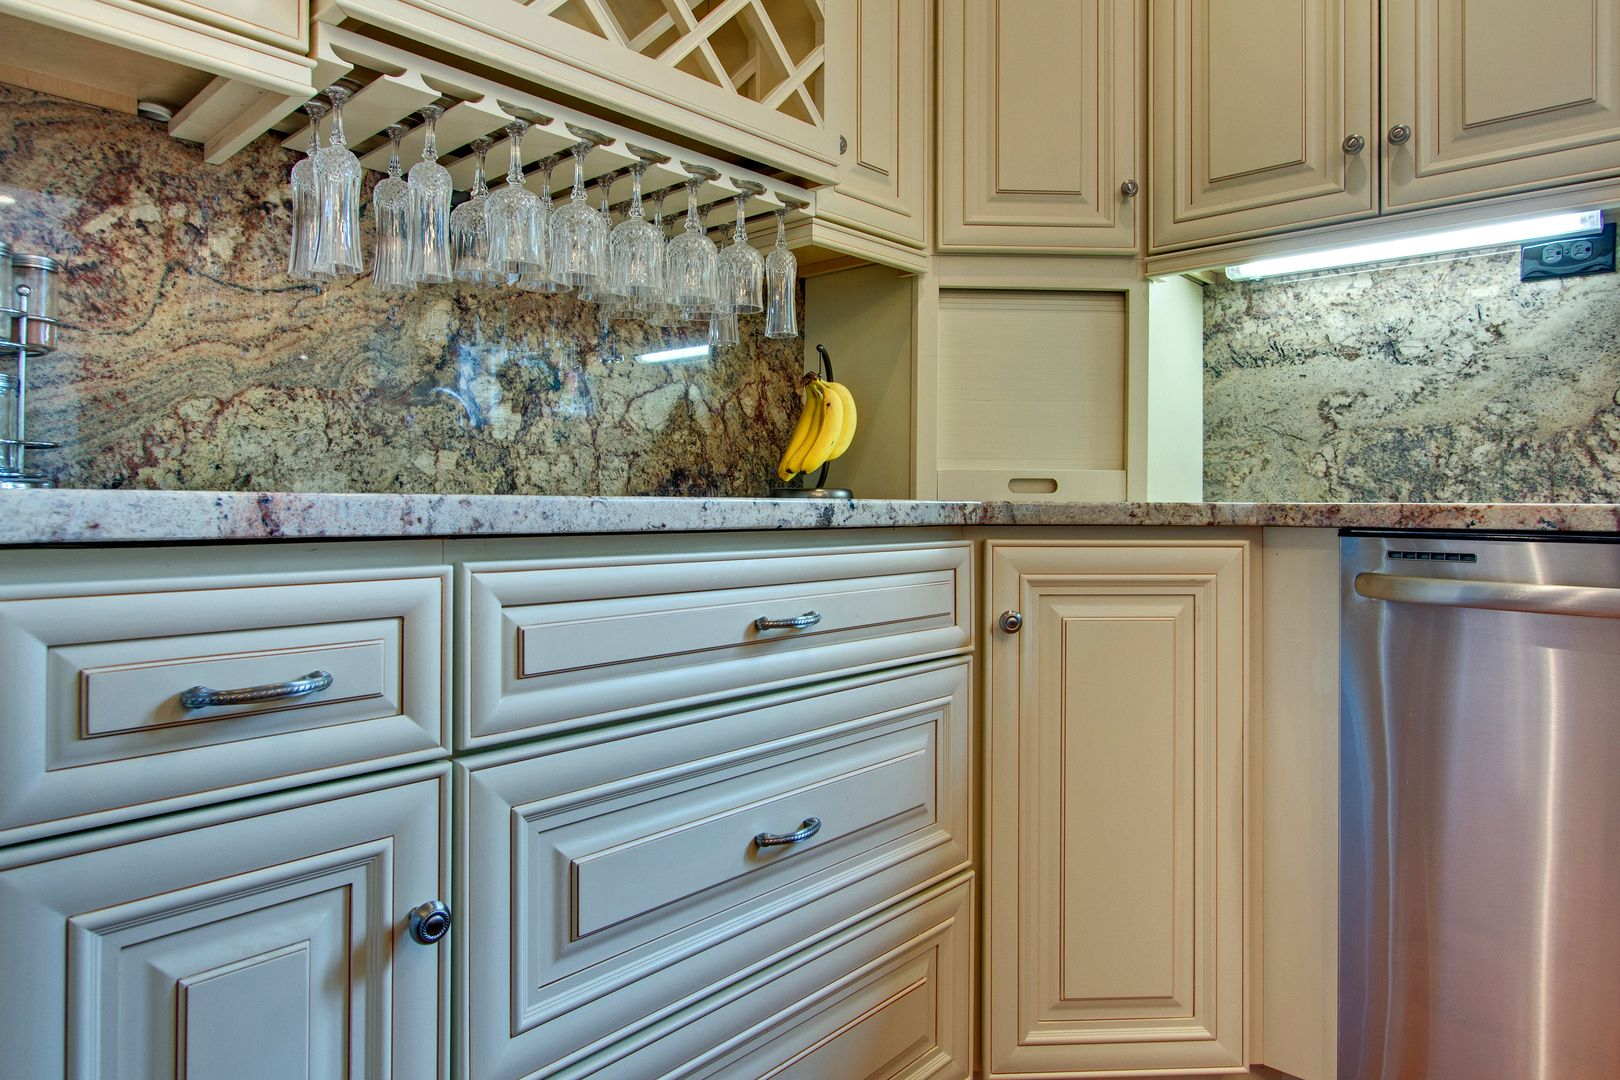 Liking Base Color Tending Towards Cream Rather Than Stark White A Very Light Glaze Around Only Hig Kitchen Cabinets Kitchen Renovation Glazed Kitchen Cabinets